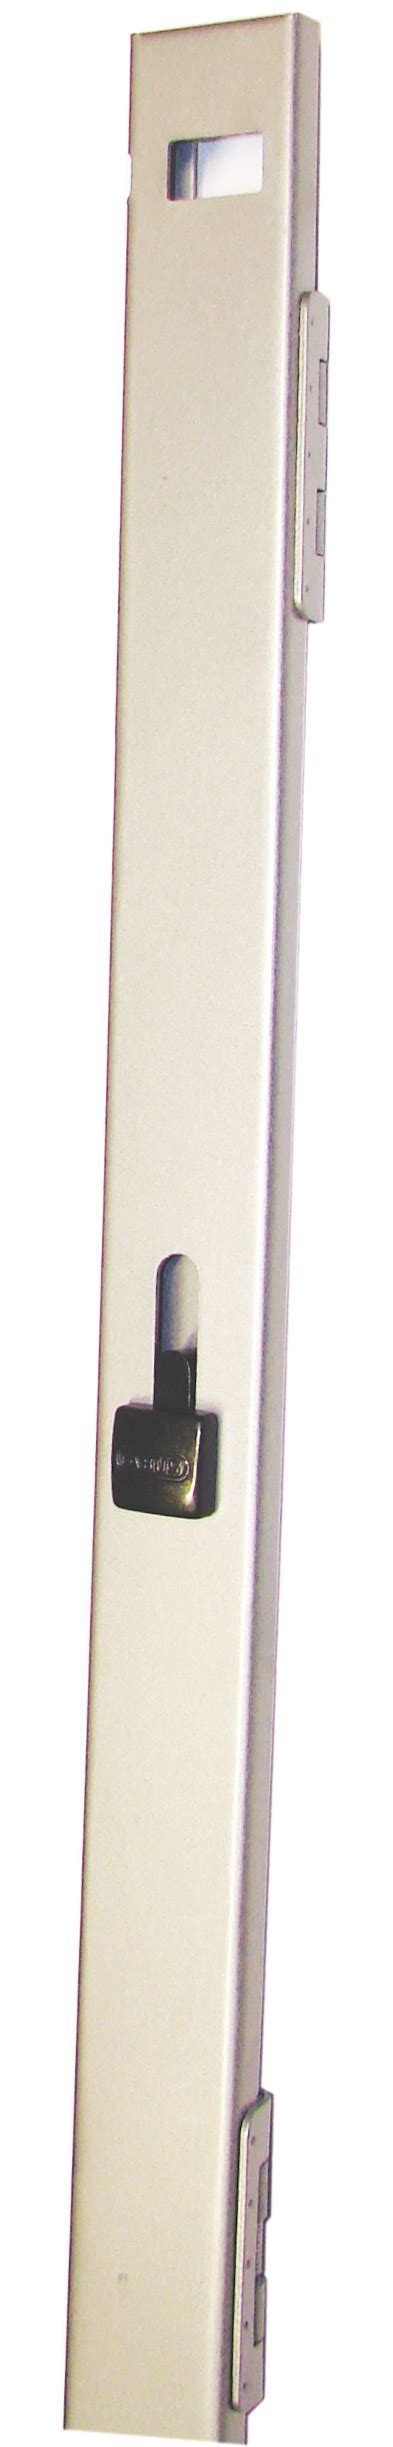 file cabinet lock bar abus file cabinet locking bars officekeys ca